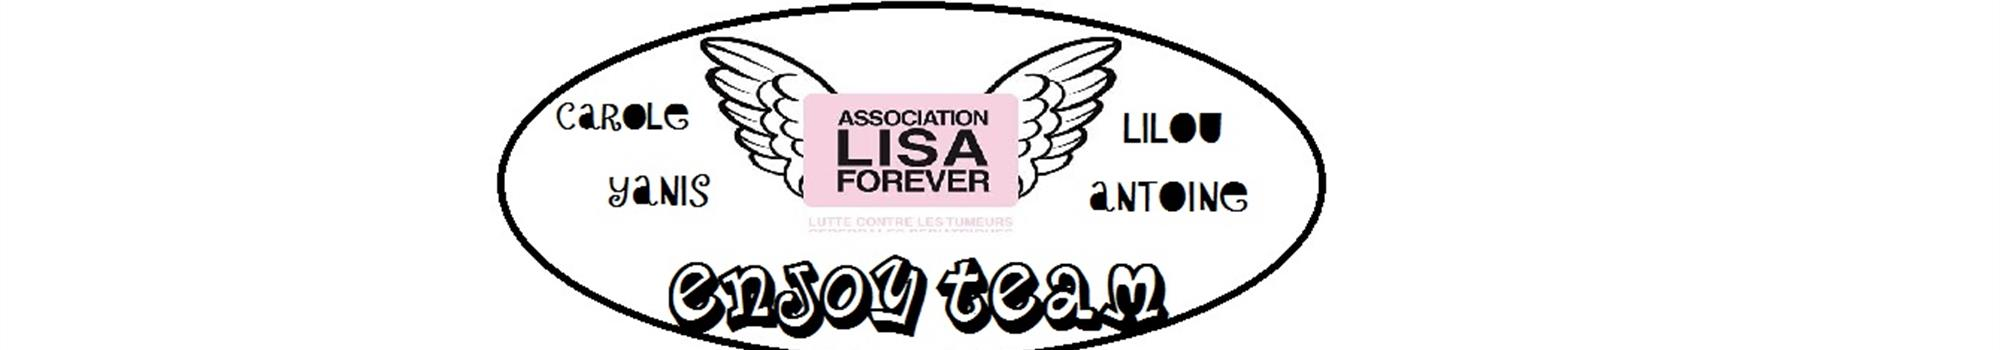 Collecte Enjoy Team !  - LISA FOREVER